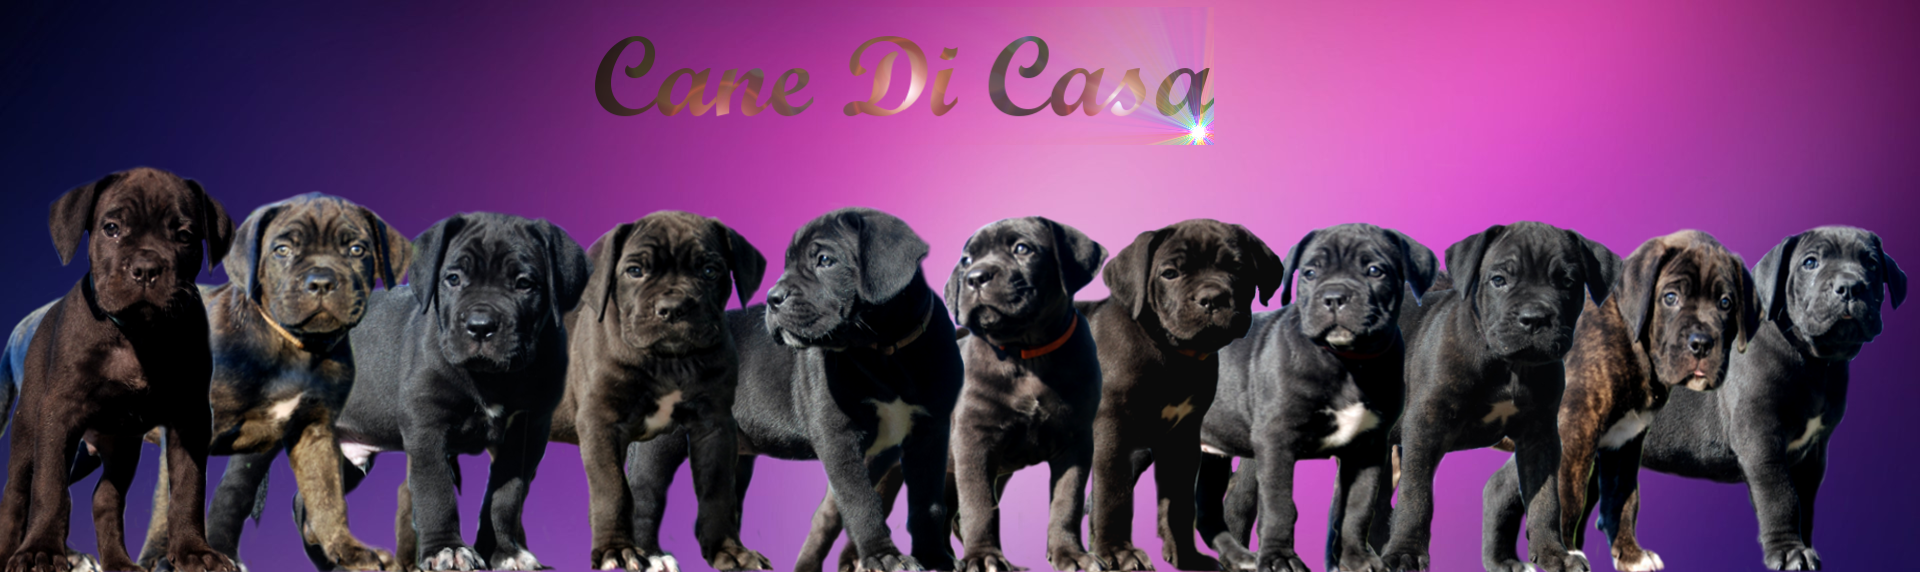 banner-pups-png